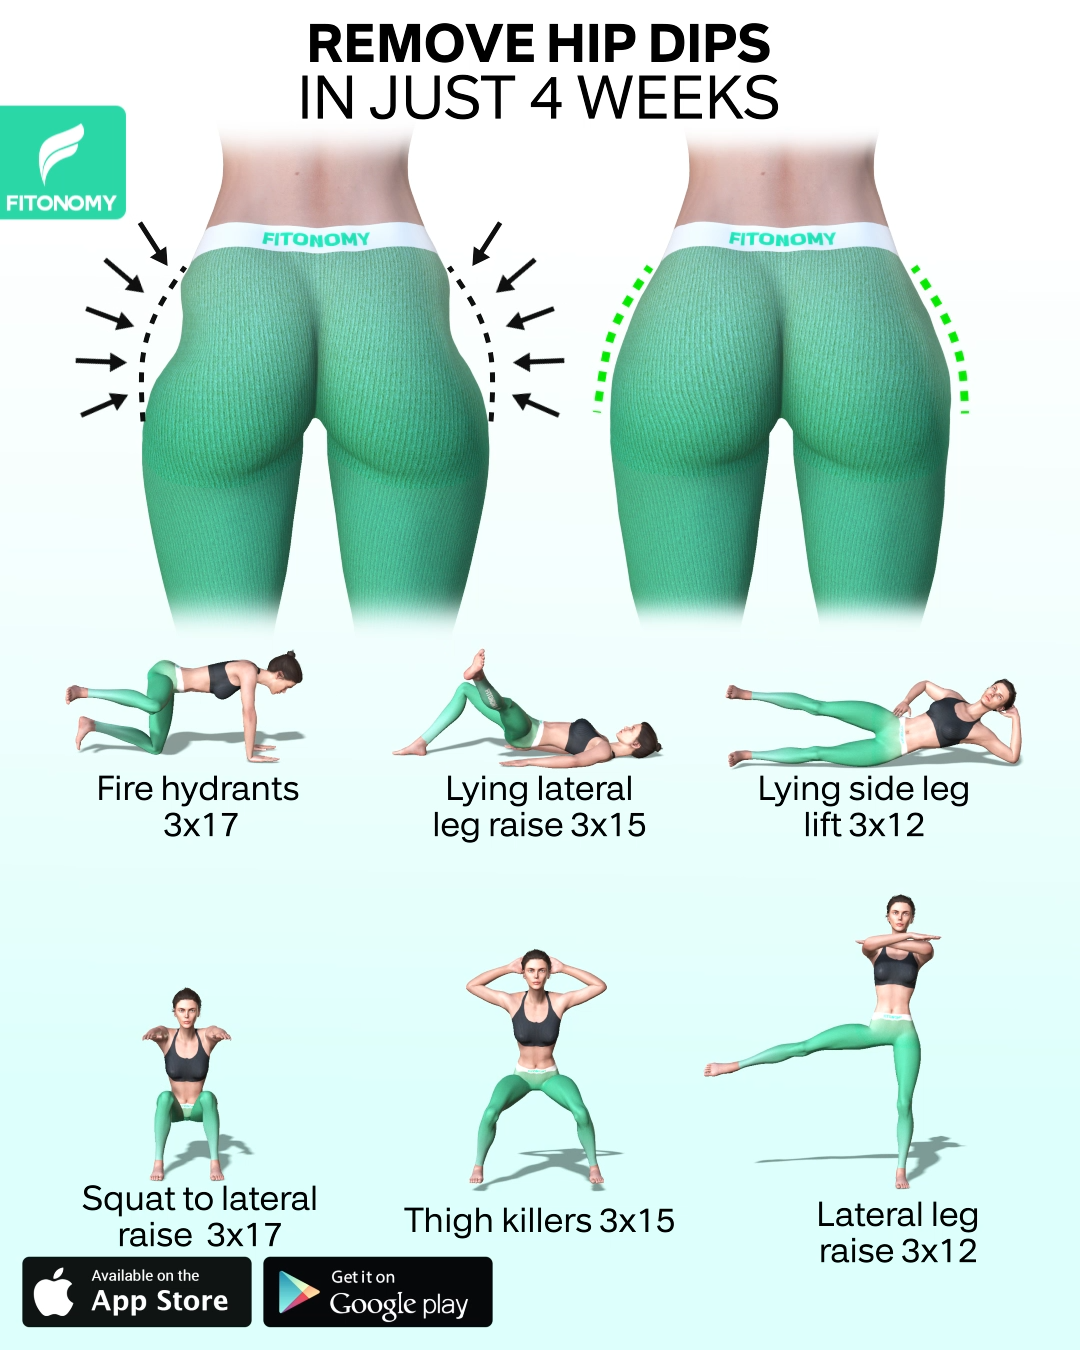 REMOVE HIP DIPS IN JUST 4 WEEKS